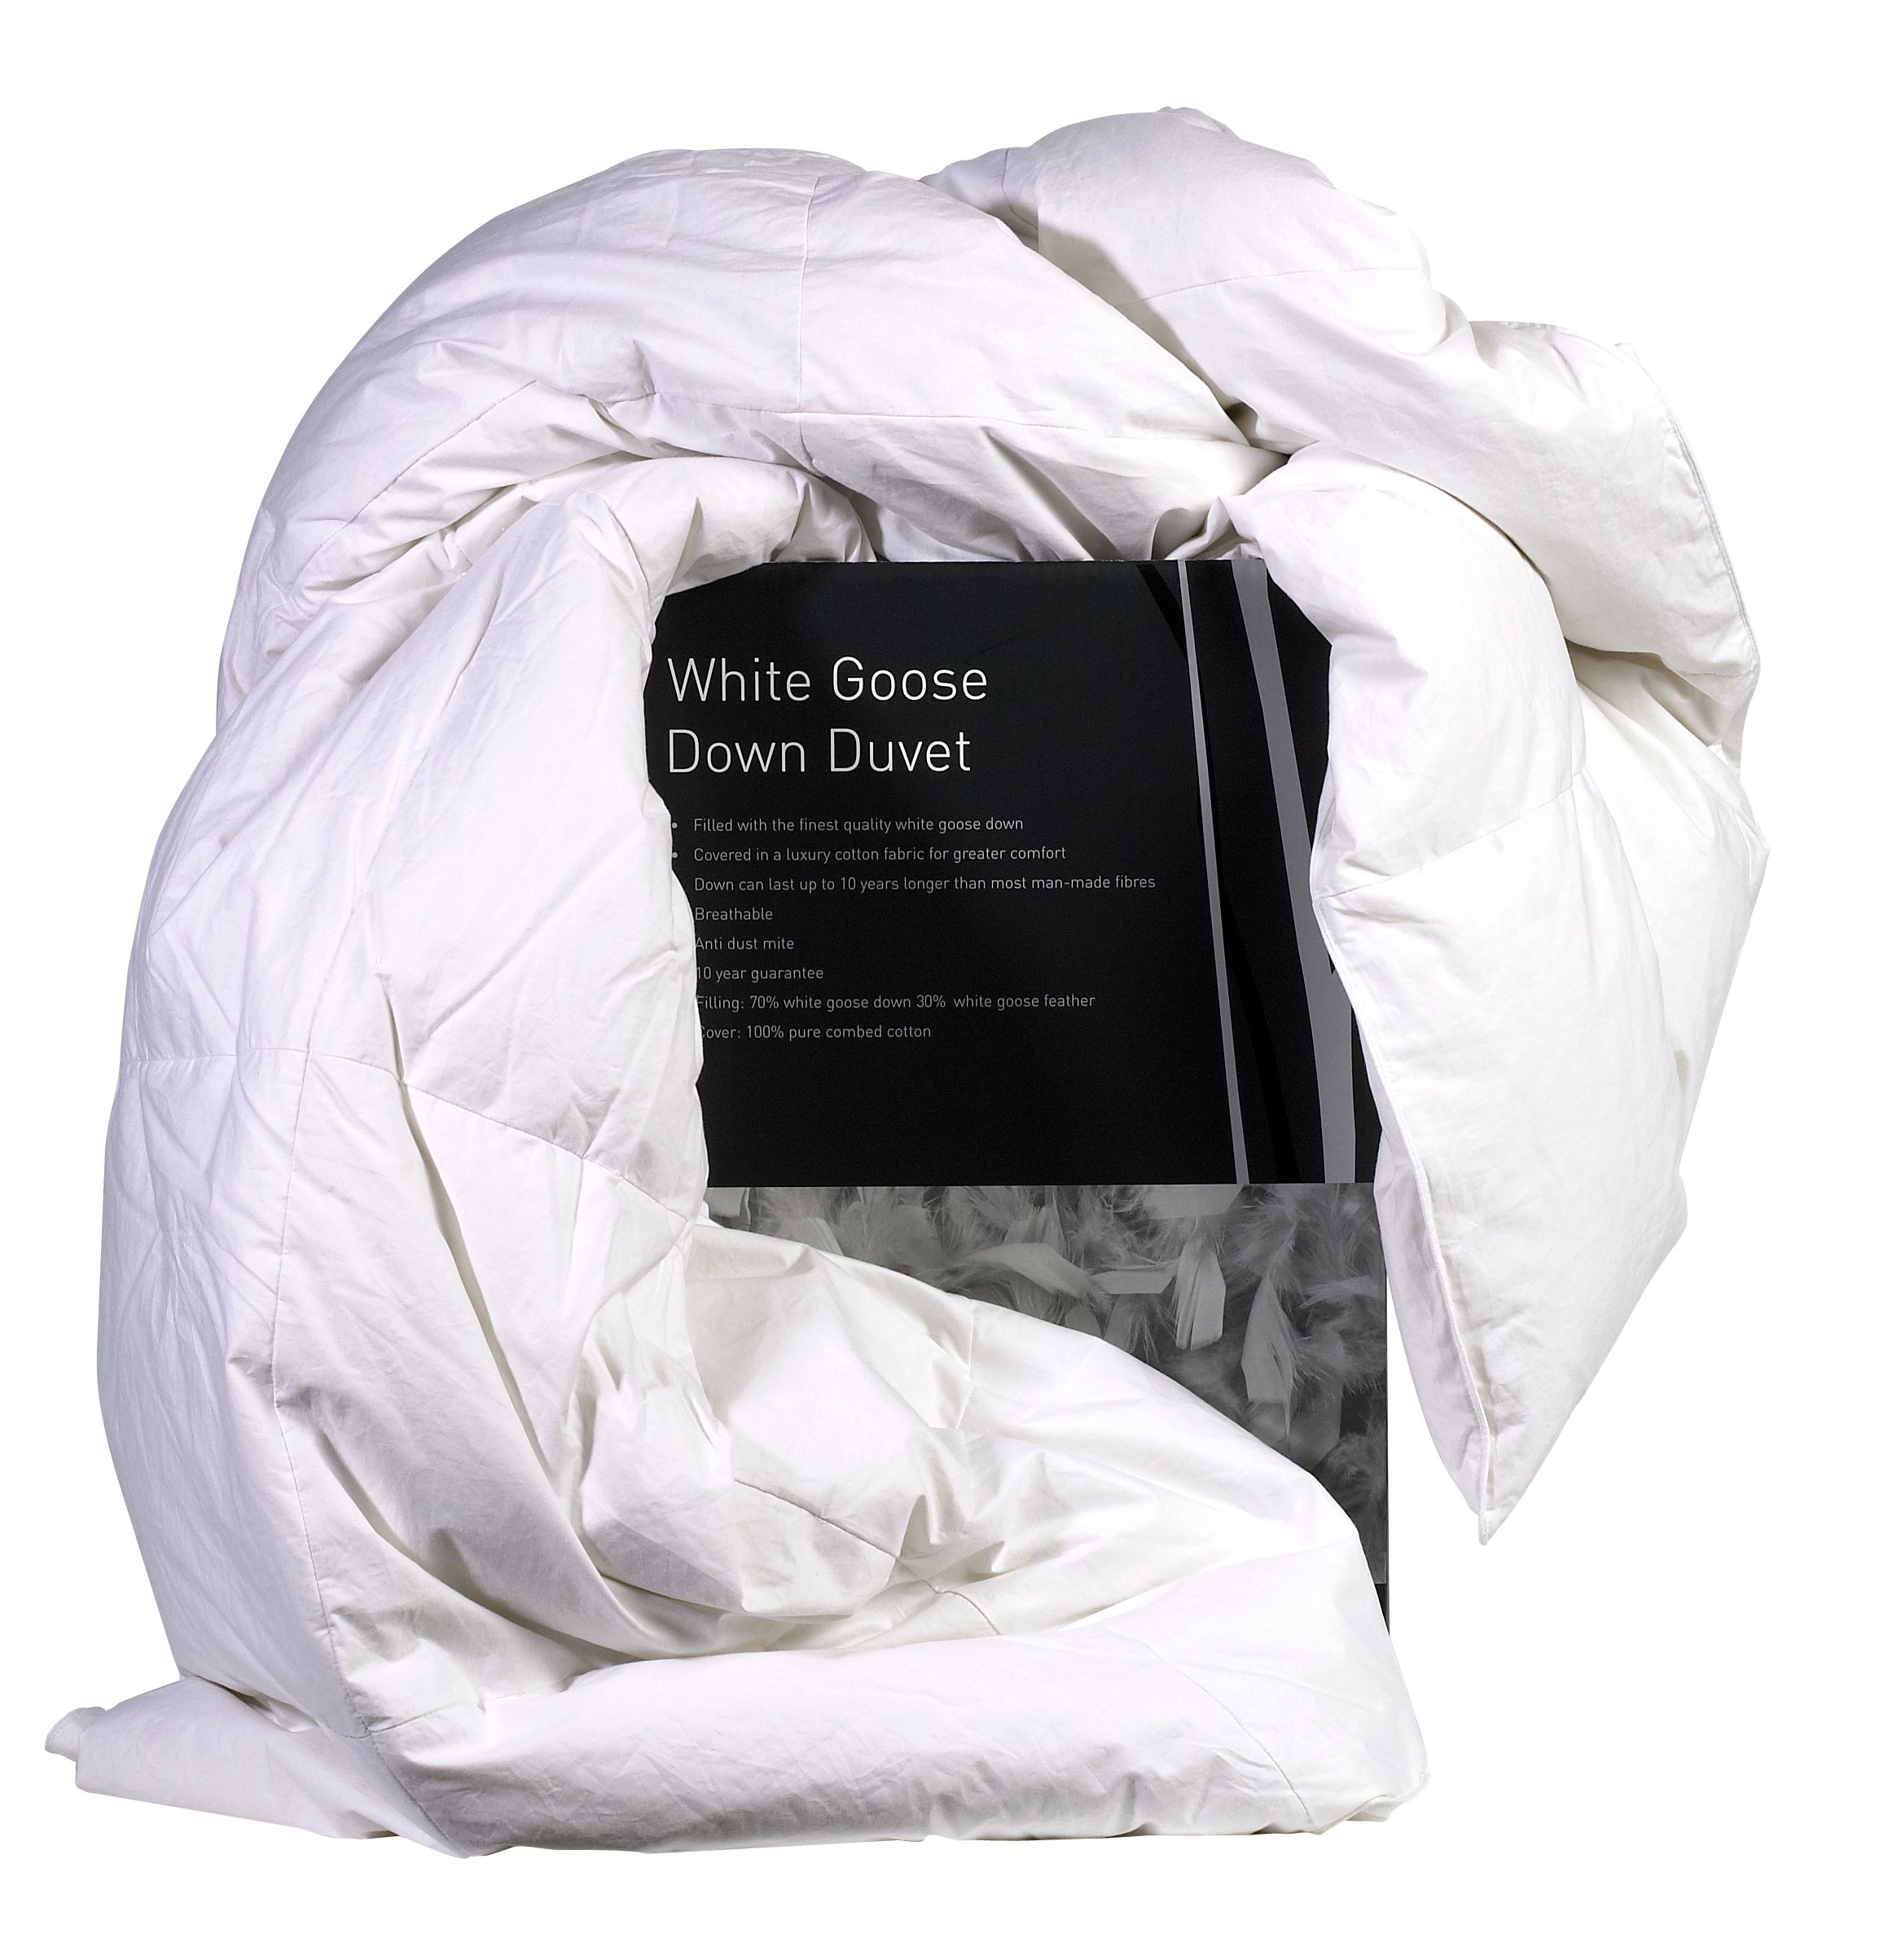 Anolon Linea Goose down single duvet 10.5 tog